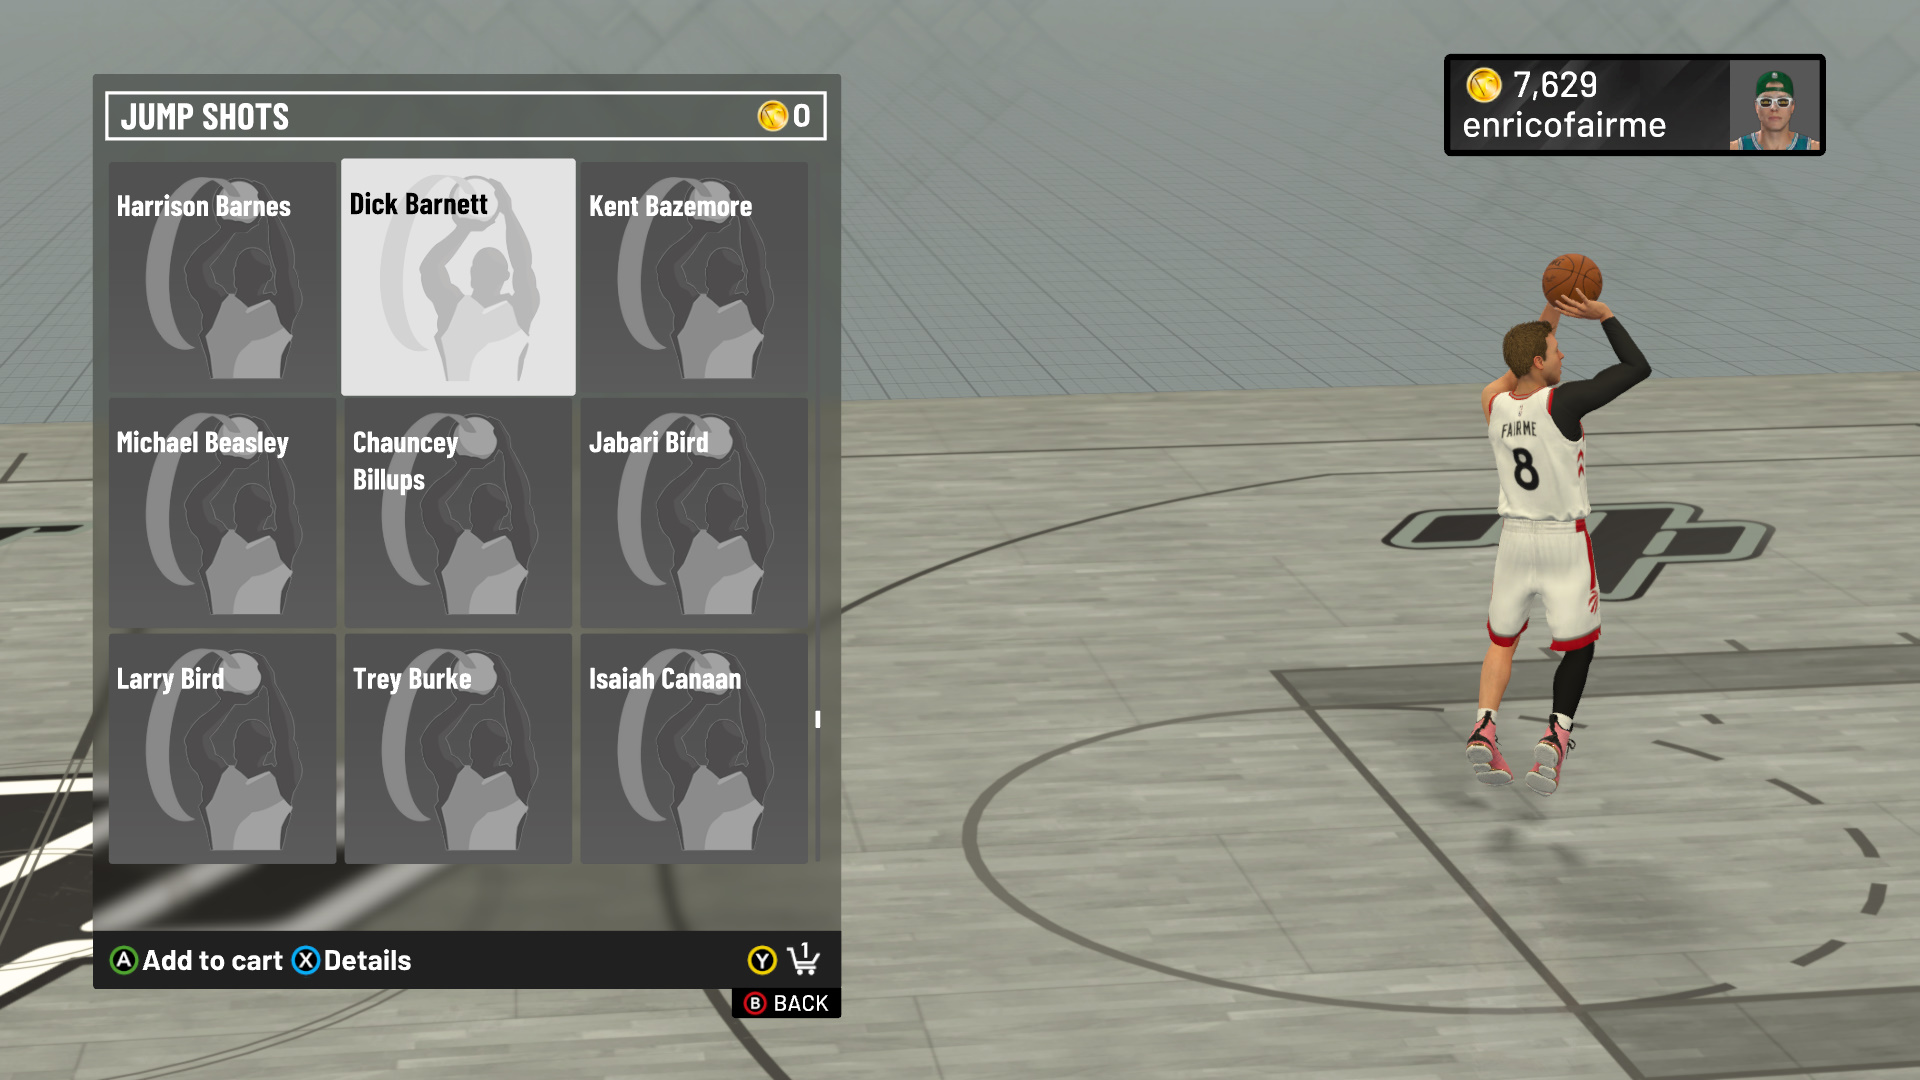 How to Change Jumpshot Animation in NBA 2K19